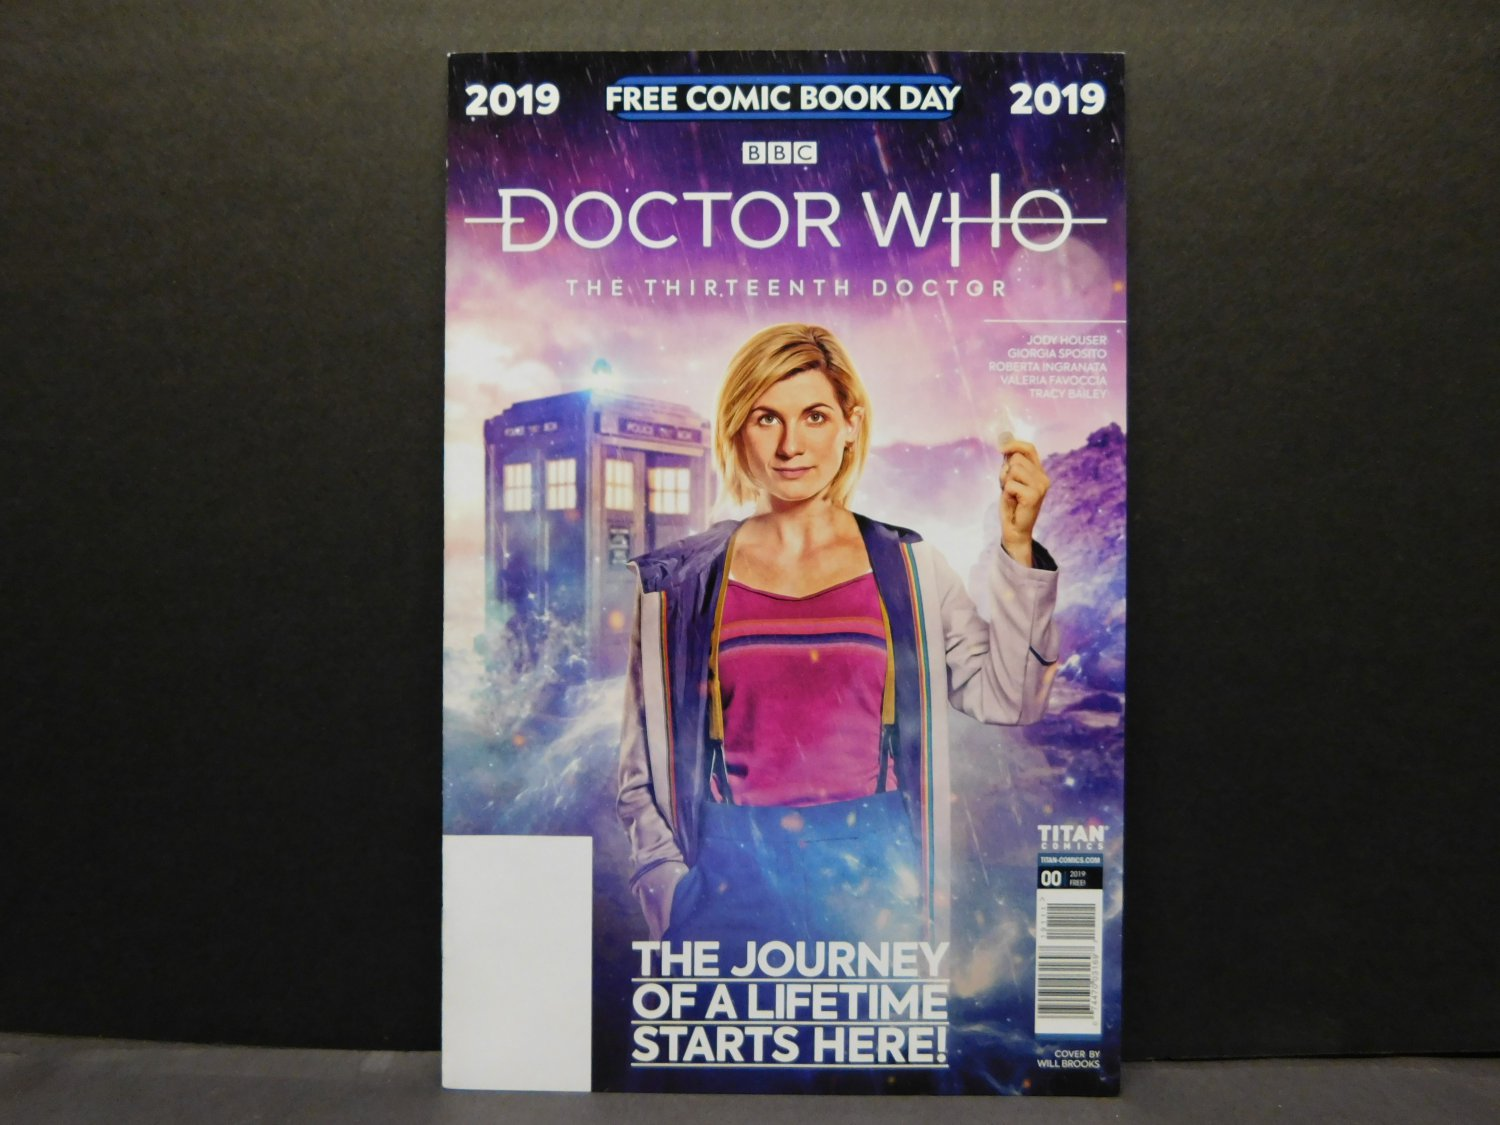 DOCTOR WHO 13th Doctor - FCBD Titan Comics 2019 - Not Stamped